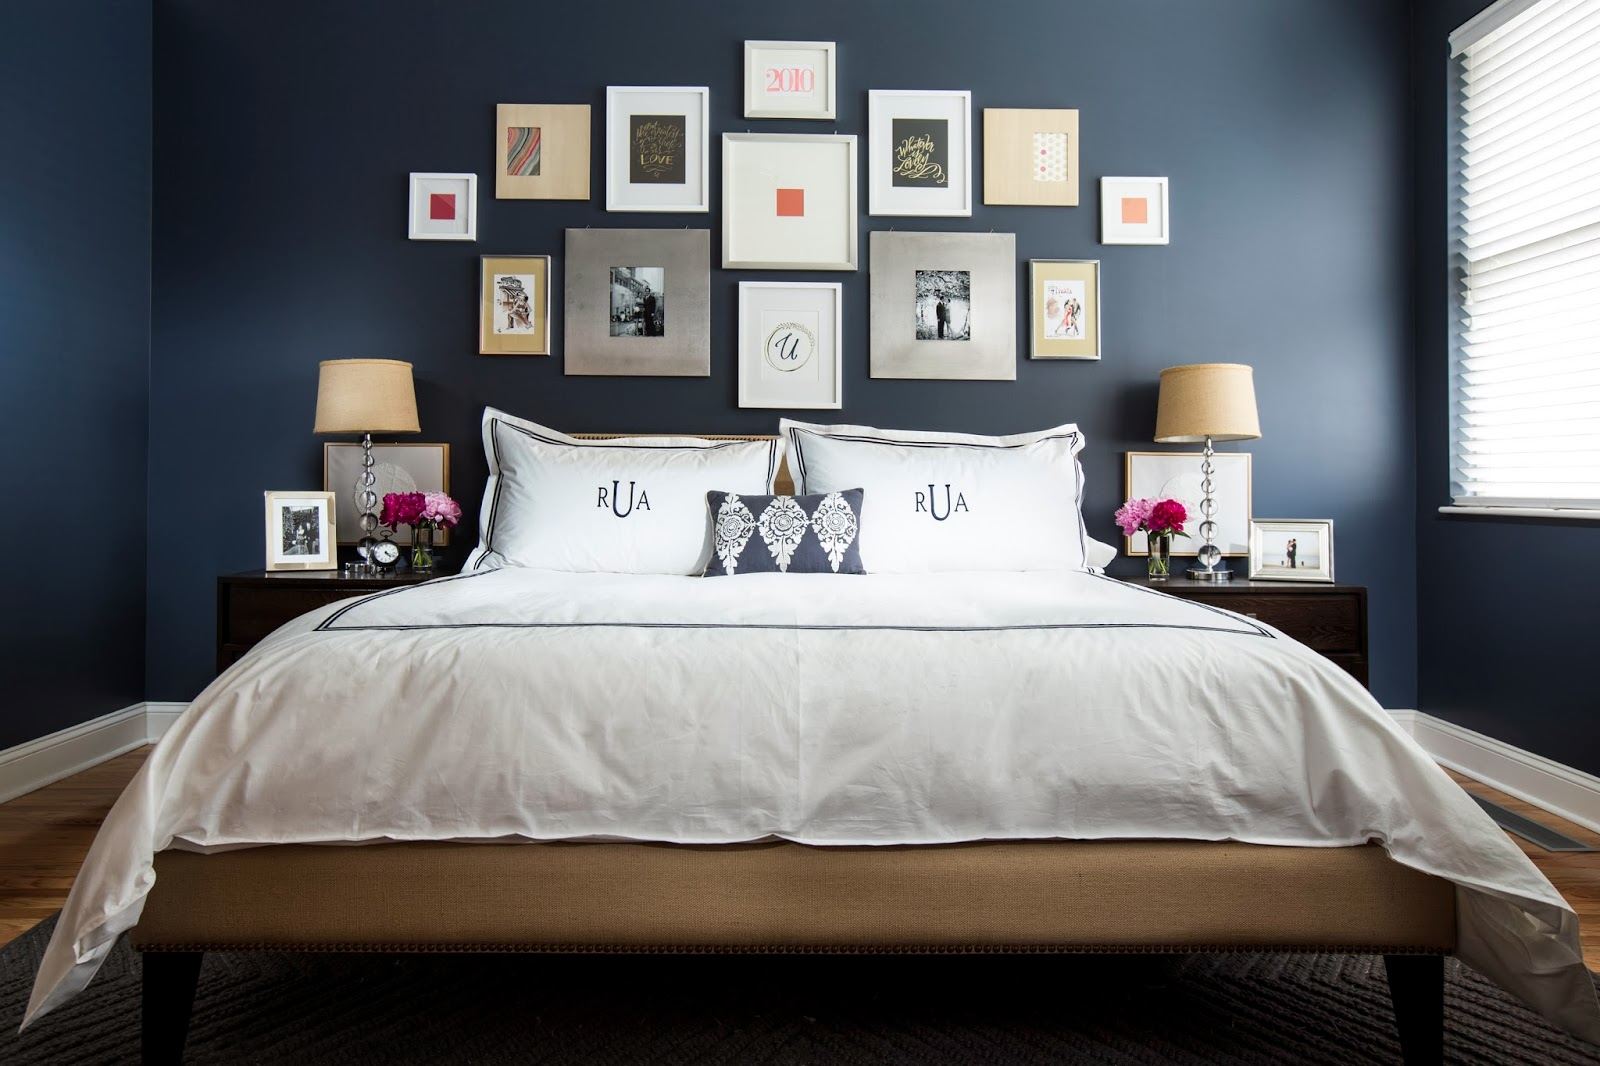 Blue bedroom design ideas - Dark Blue Bedroom Design Decor Ideas With Photo Frame Decoration